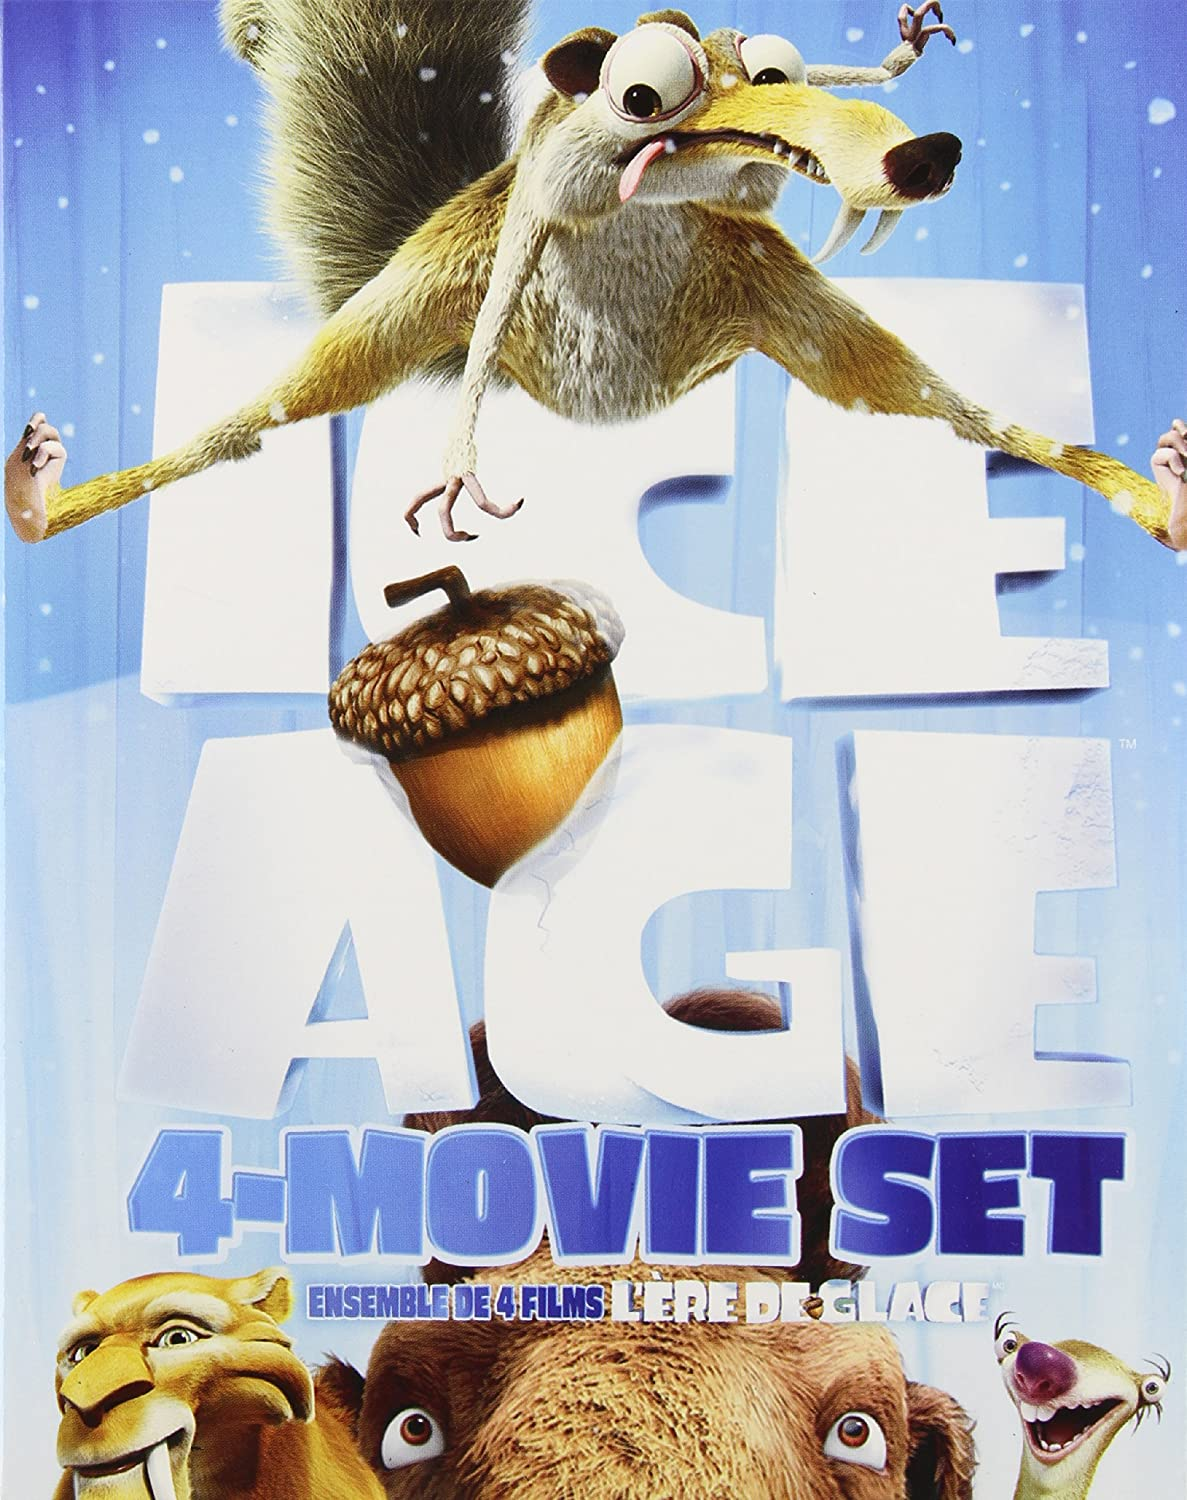 Amazon.com: Ice Age Comp (1-4) Bs Bd-cb [Blu-ray]: Movies & TV